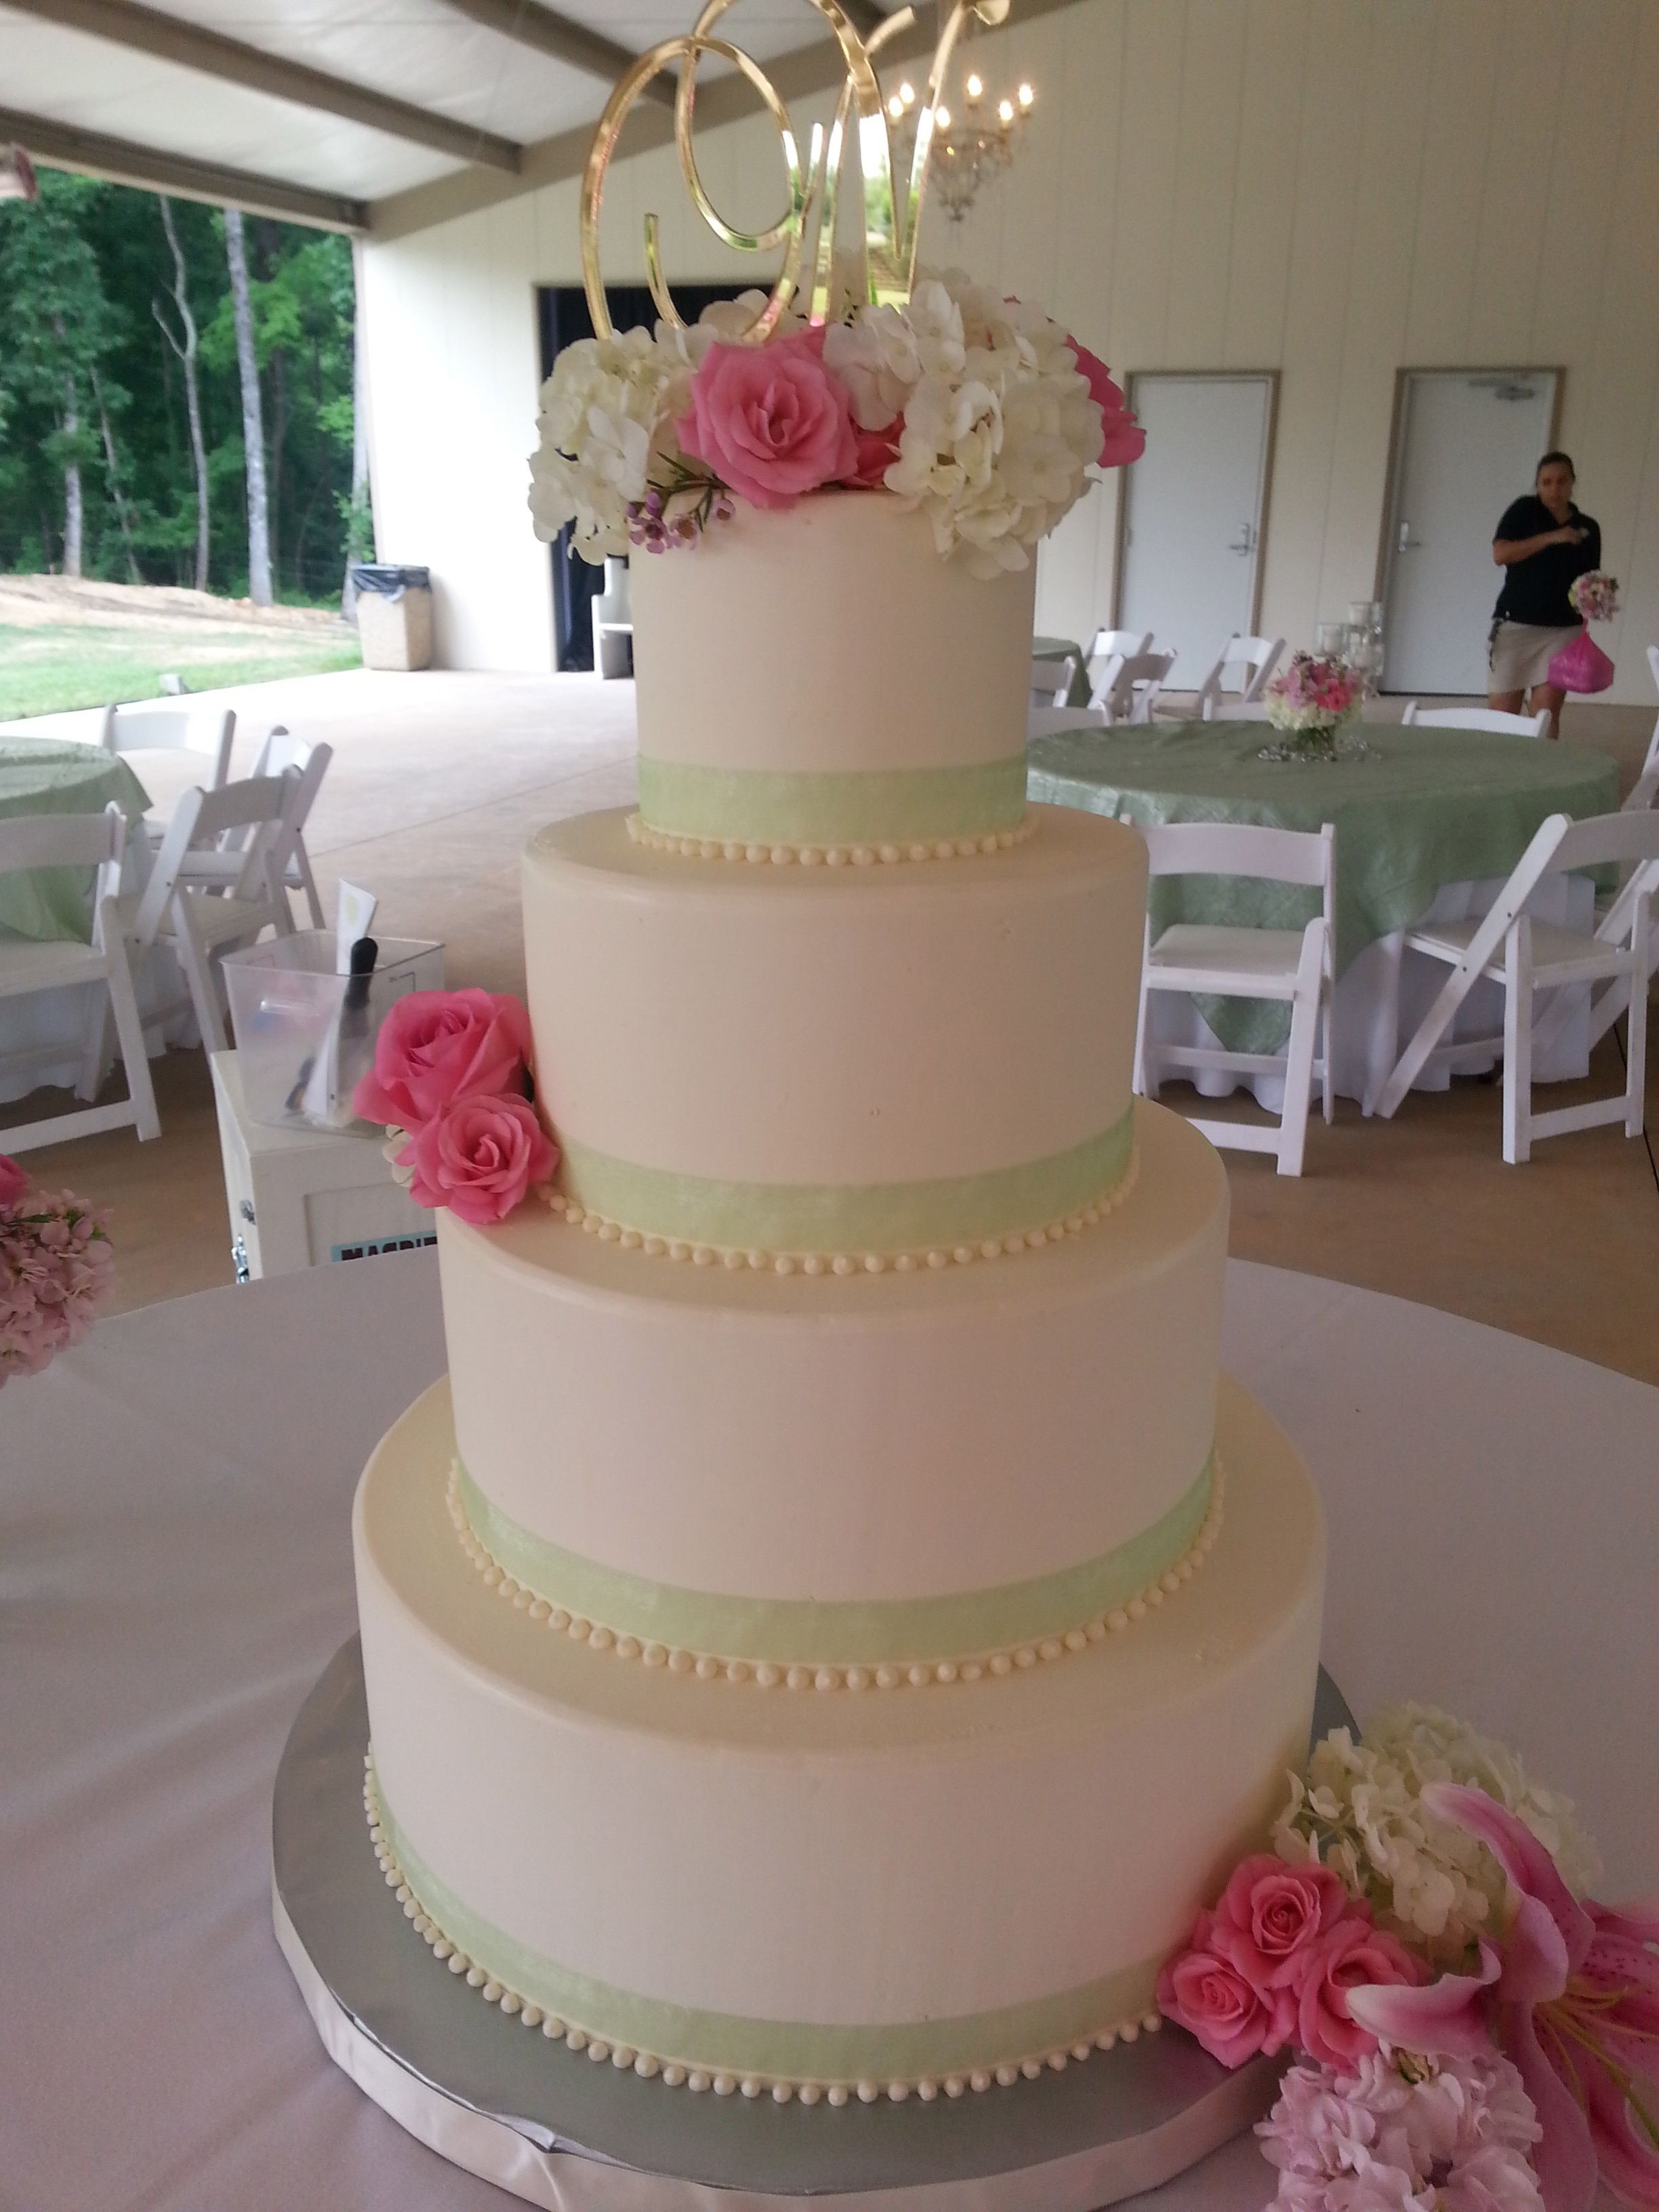 Magpies Bakery Knoxville  TN Buttercream wedding cake with ribbon     Magpies Bakery Knoxville  TN Buttercream wedding cake with ribbon and  floral additions for color and texture   flowers  weddings  wedding  ido   knoxville